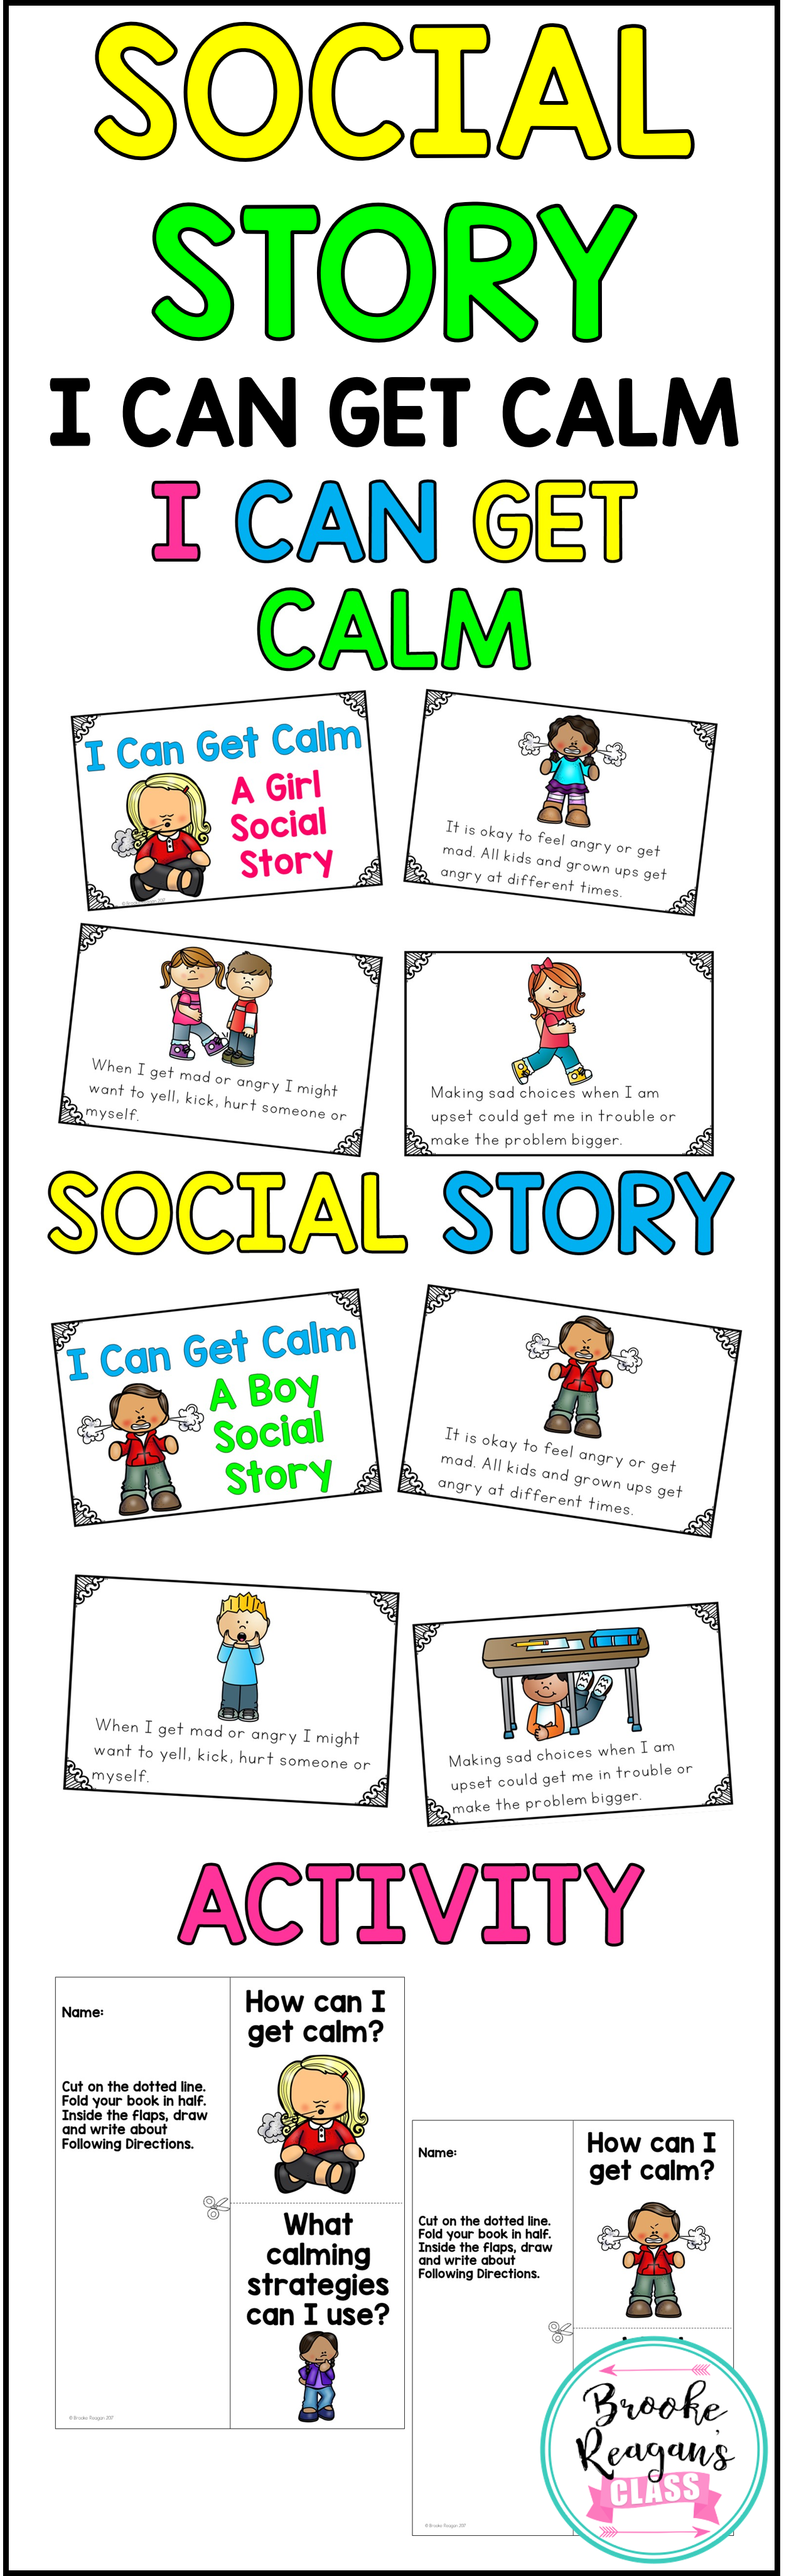 library Writer clipart calm student. Social story i can